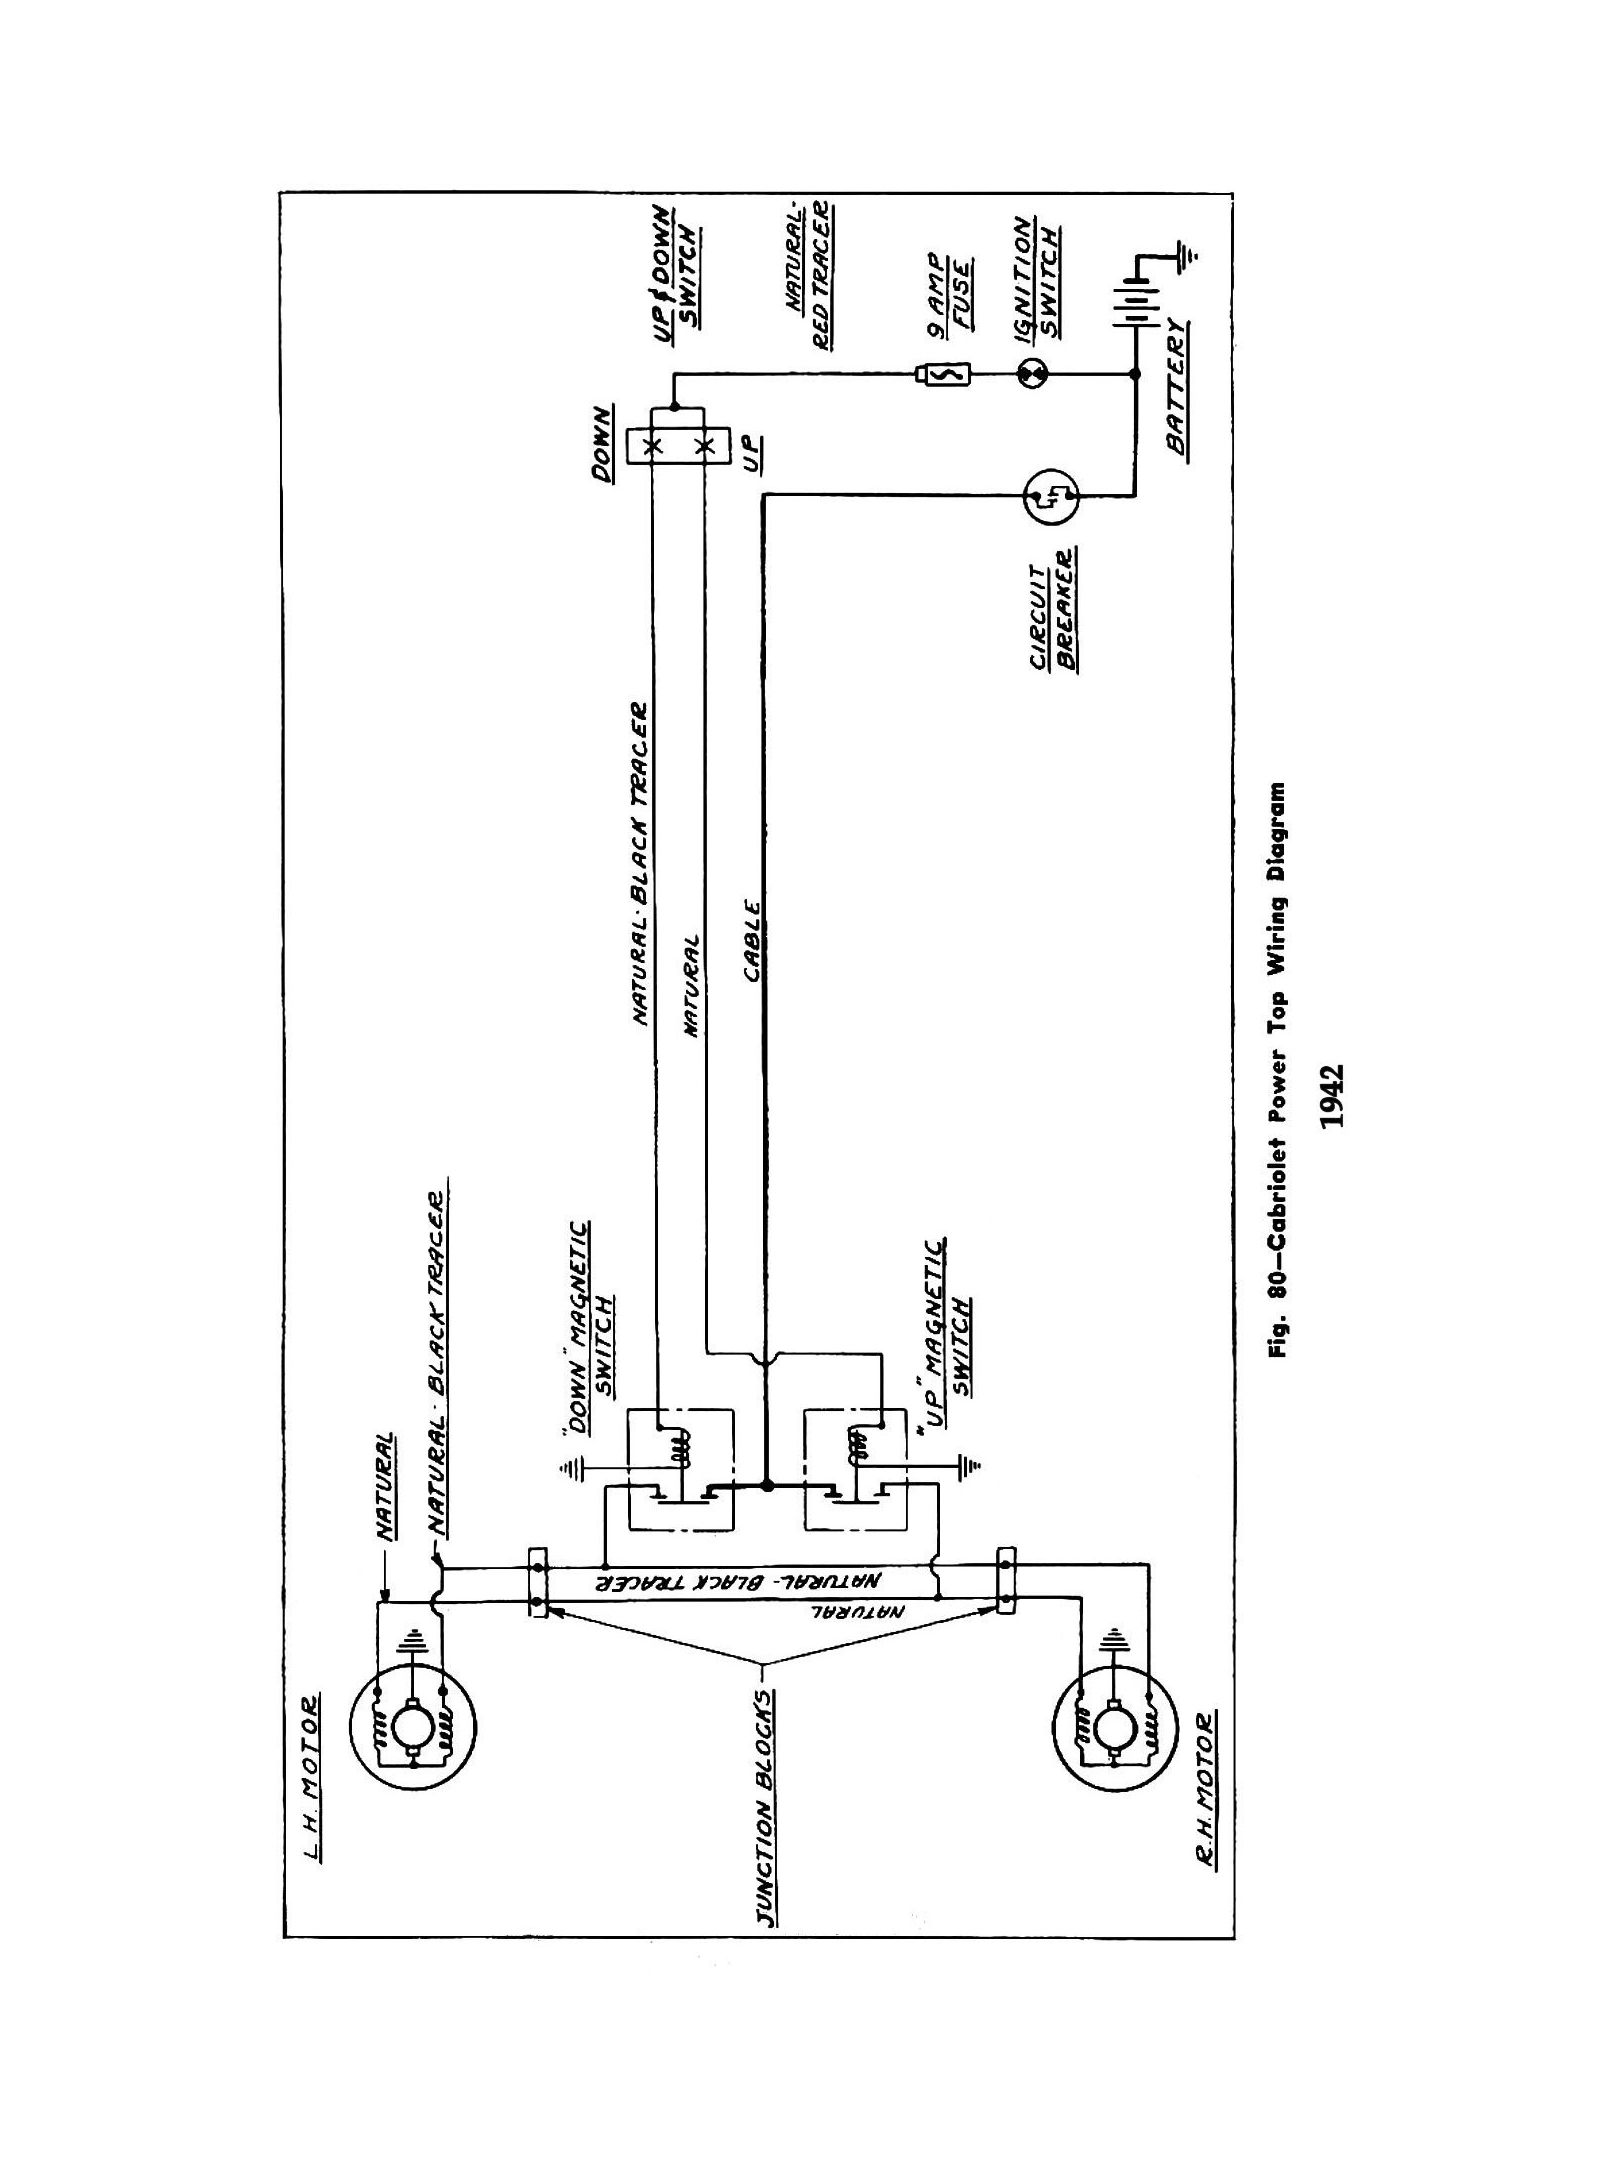 Chevy Wiring Diagrams 1998 Malibu Radio Diagram 1942 Truck Cabriolet Power Top